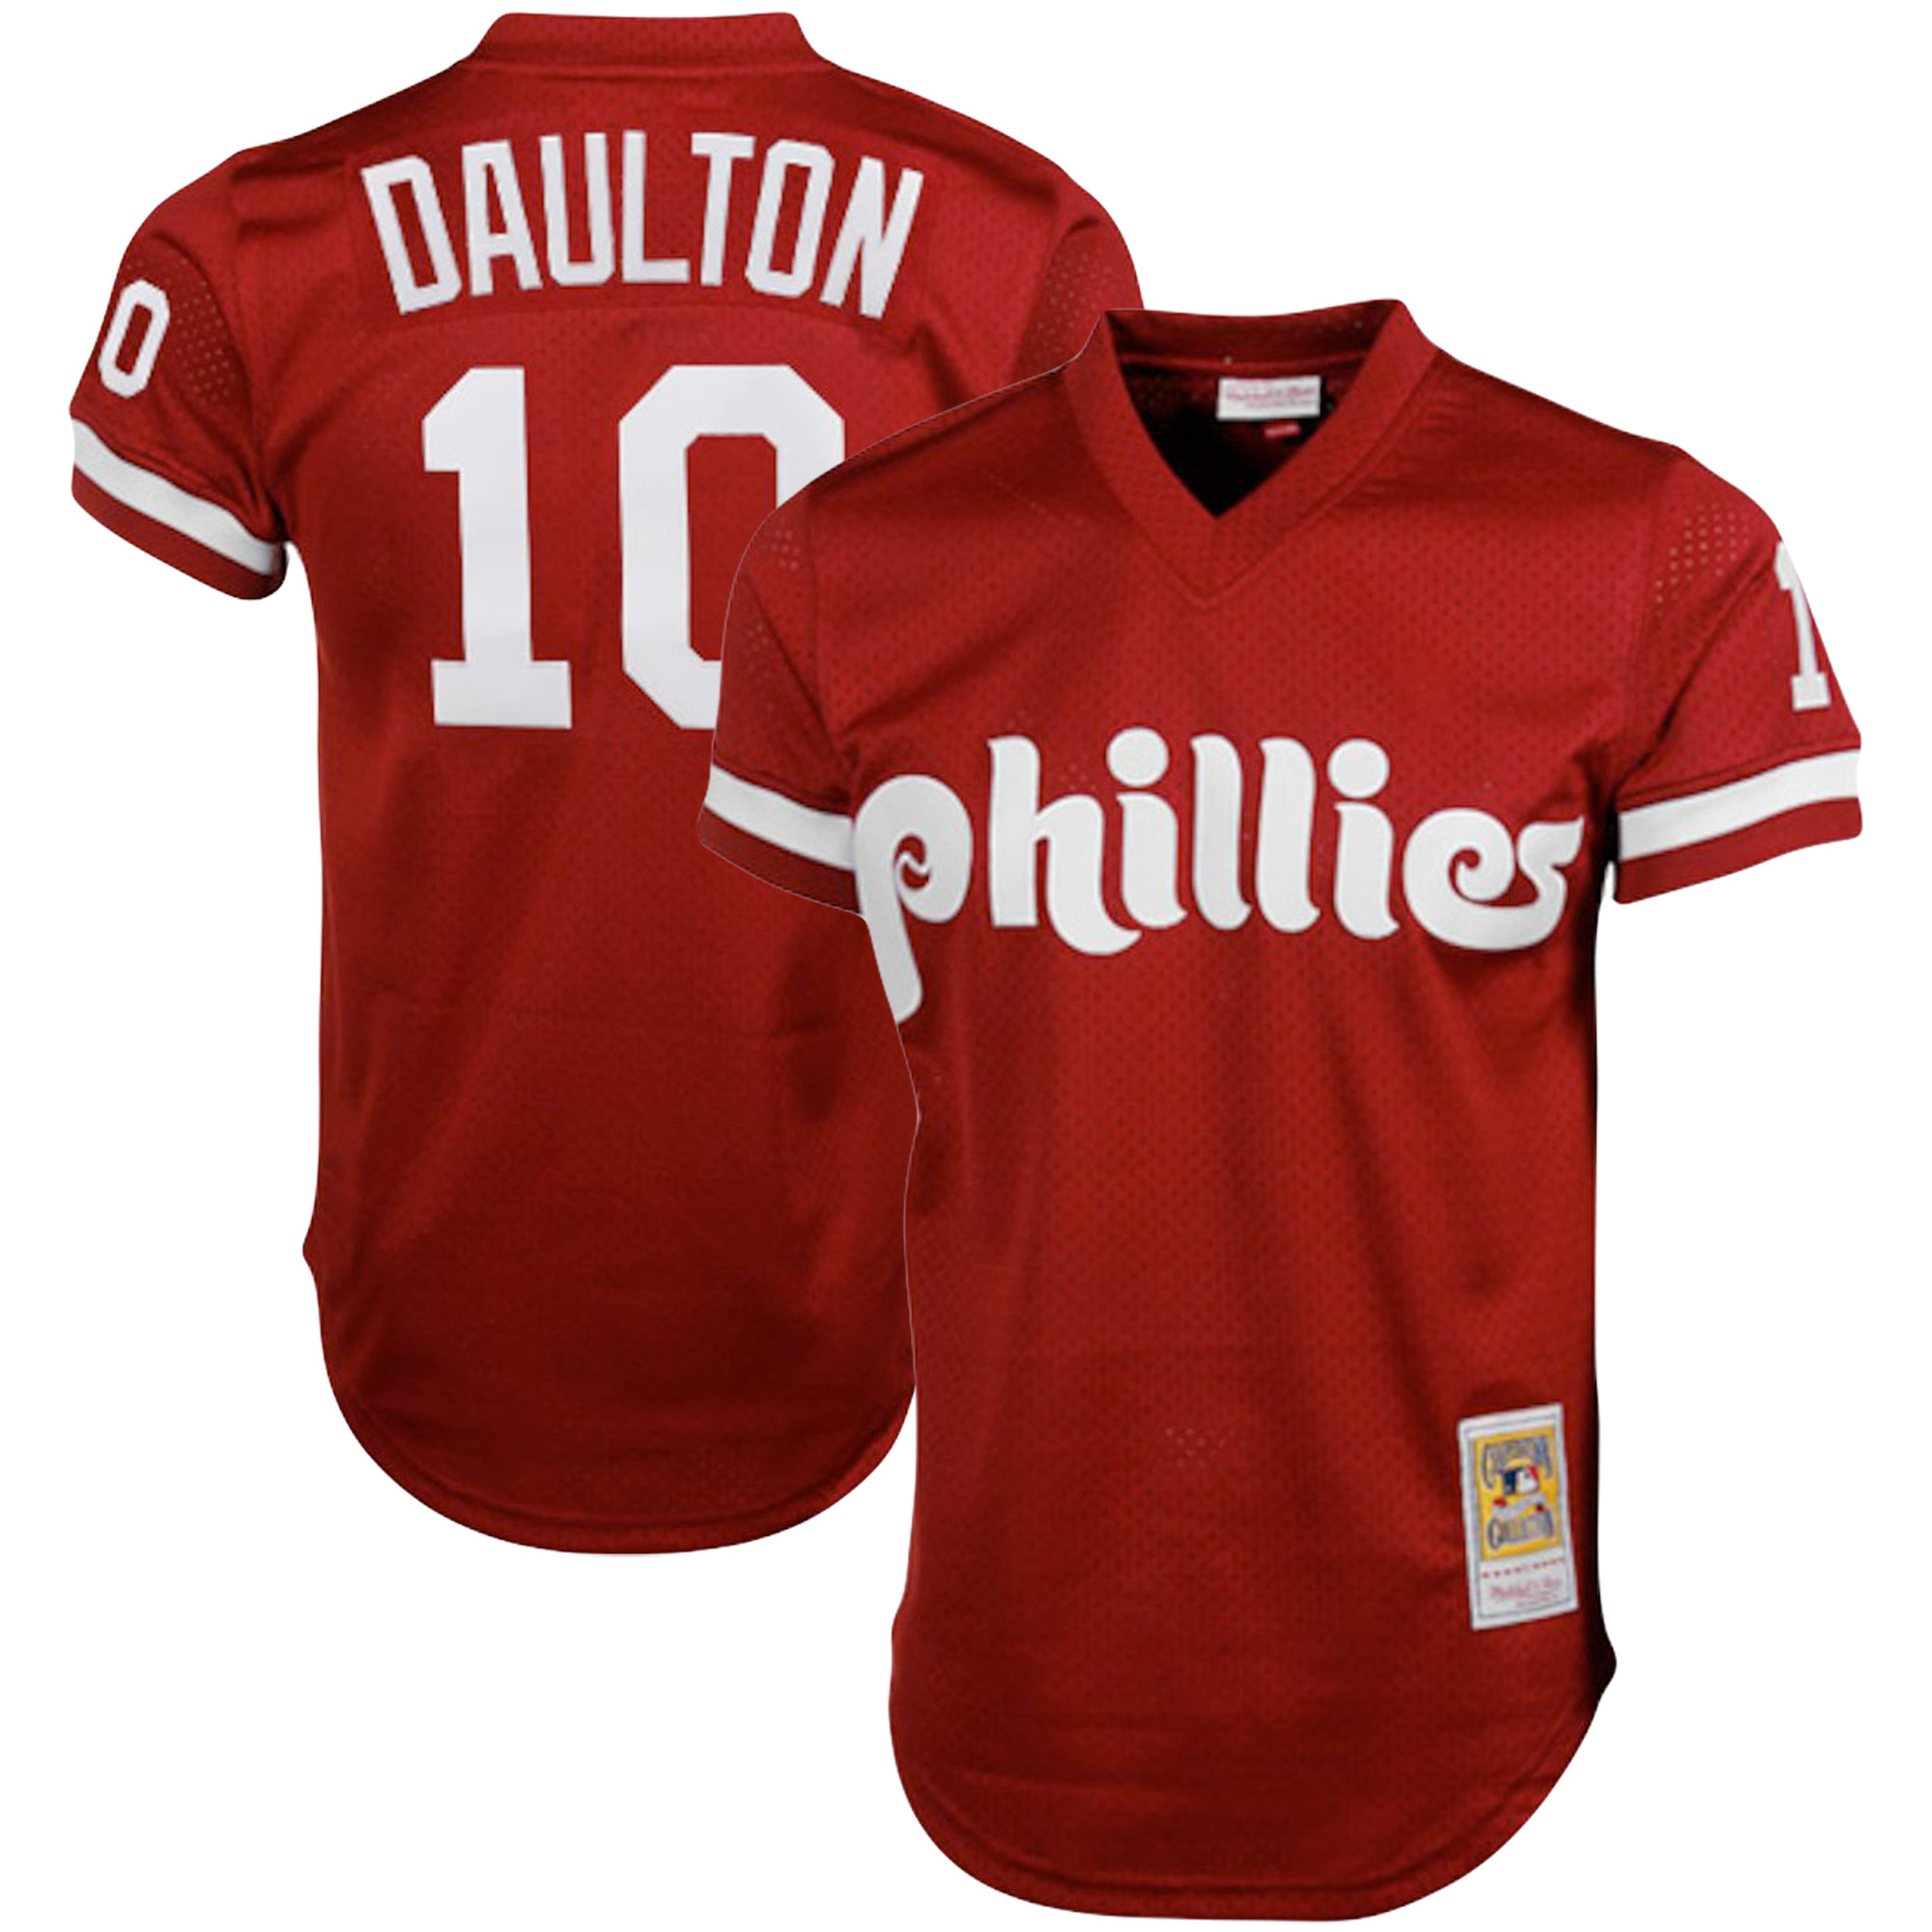 Darren Daulton Philadelphia Phillies Mitchell & Ness Cooperstown Collection Mesh Batting Practice Jersey - Red